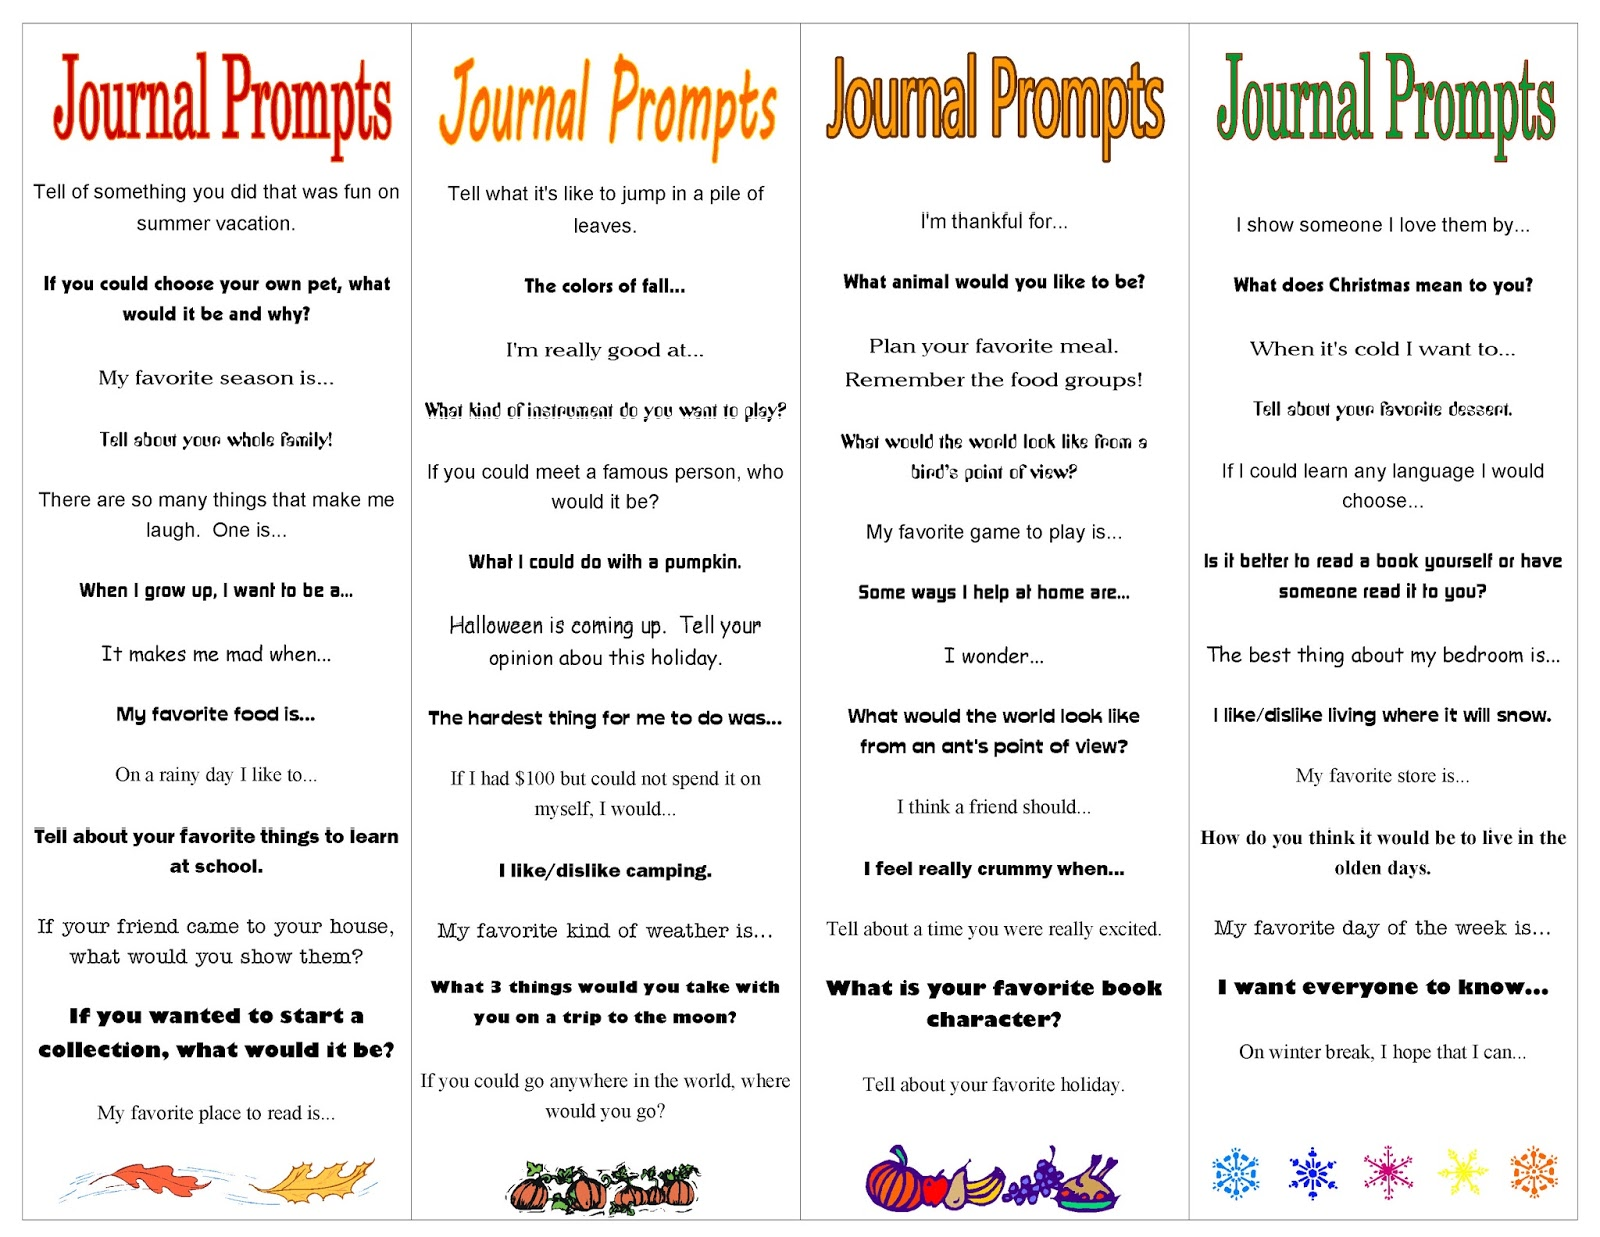 Creative writing prompts for adults pdf. Decisionsexpert.ga